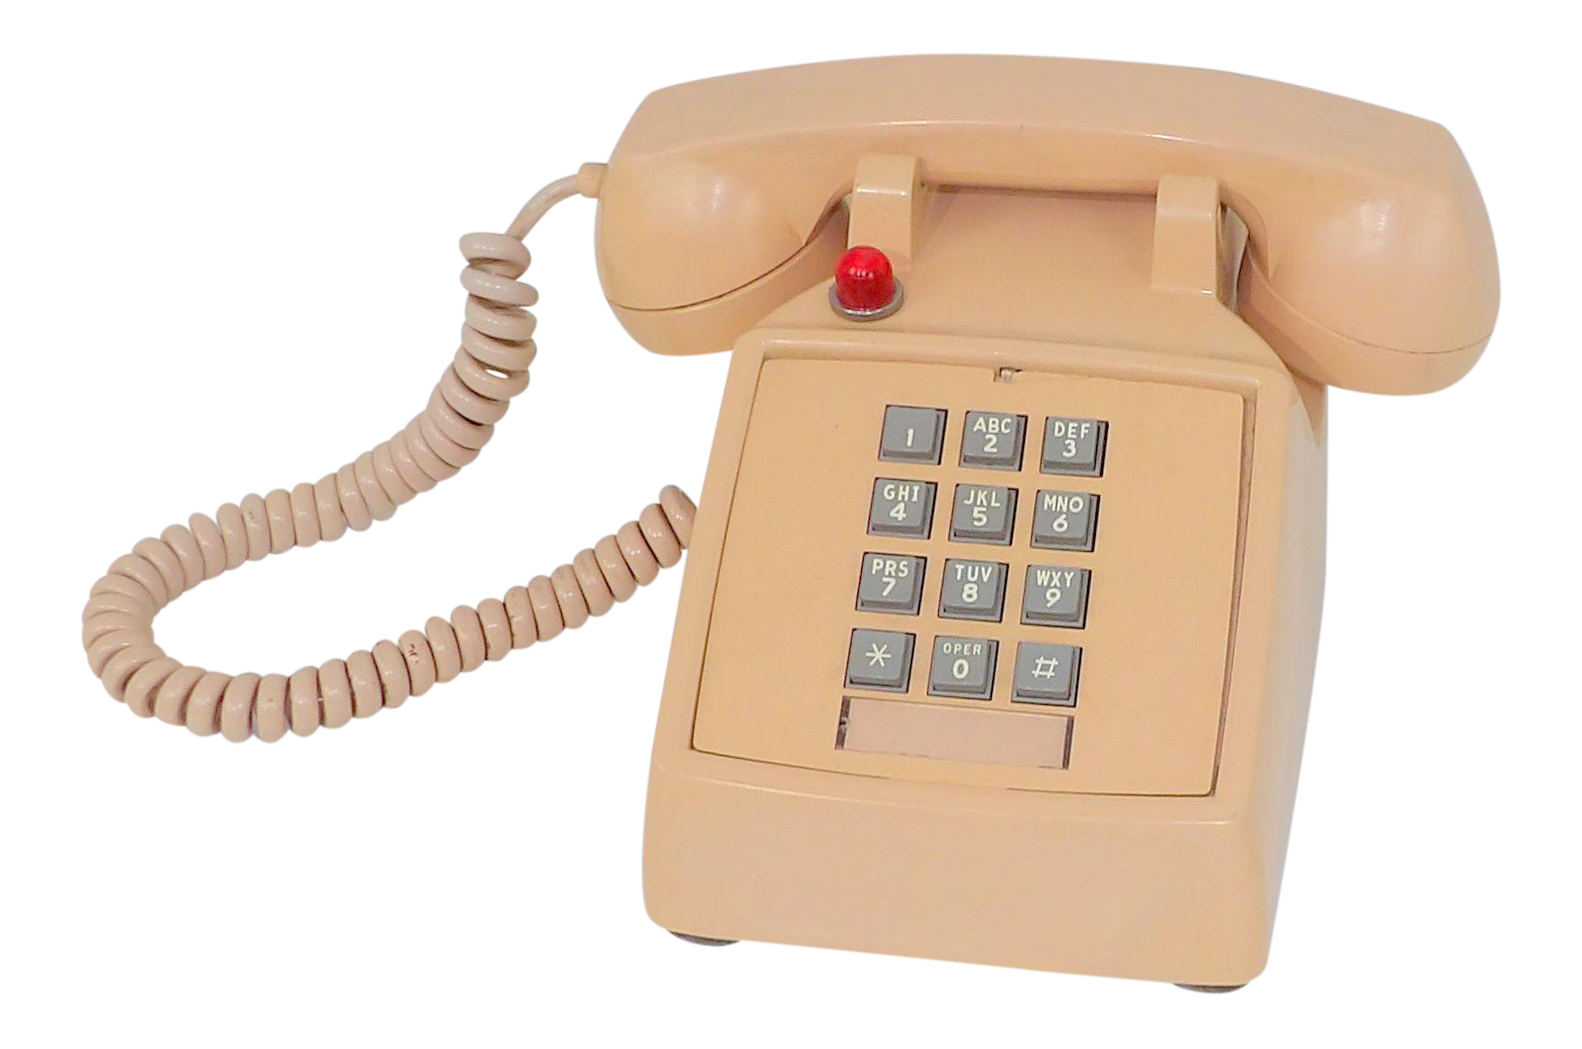 WCSA – On This Day – November 18, 2018 - Tone dialing telephones are